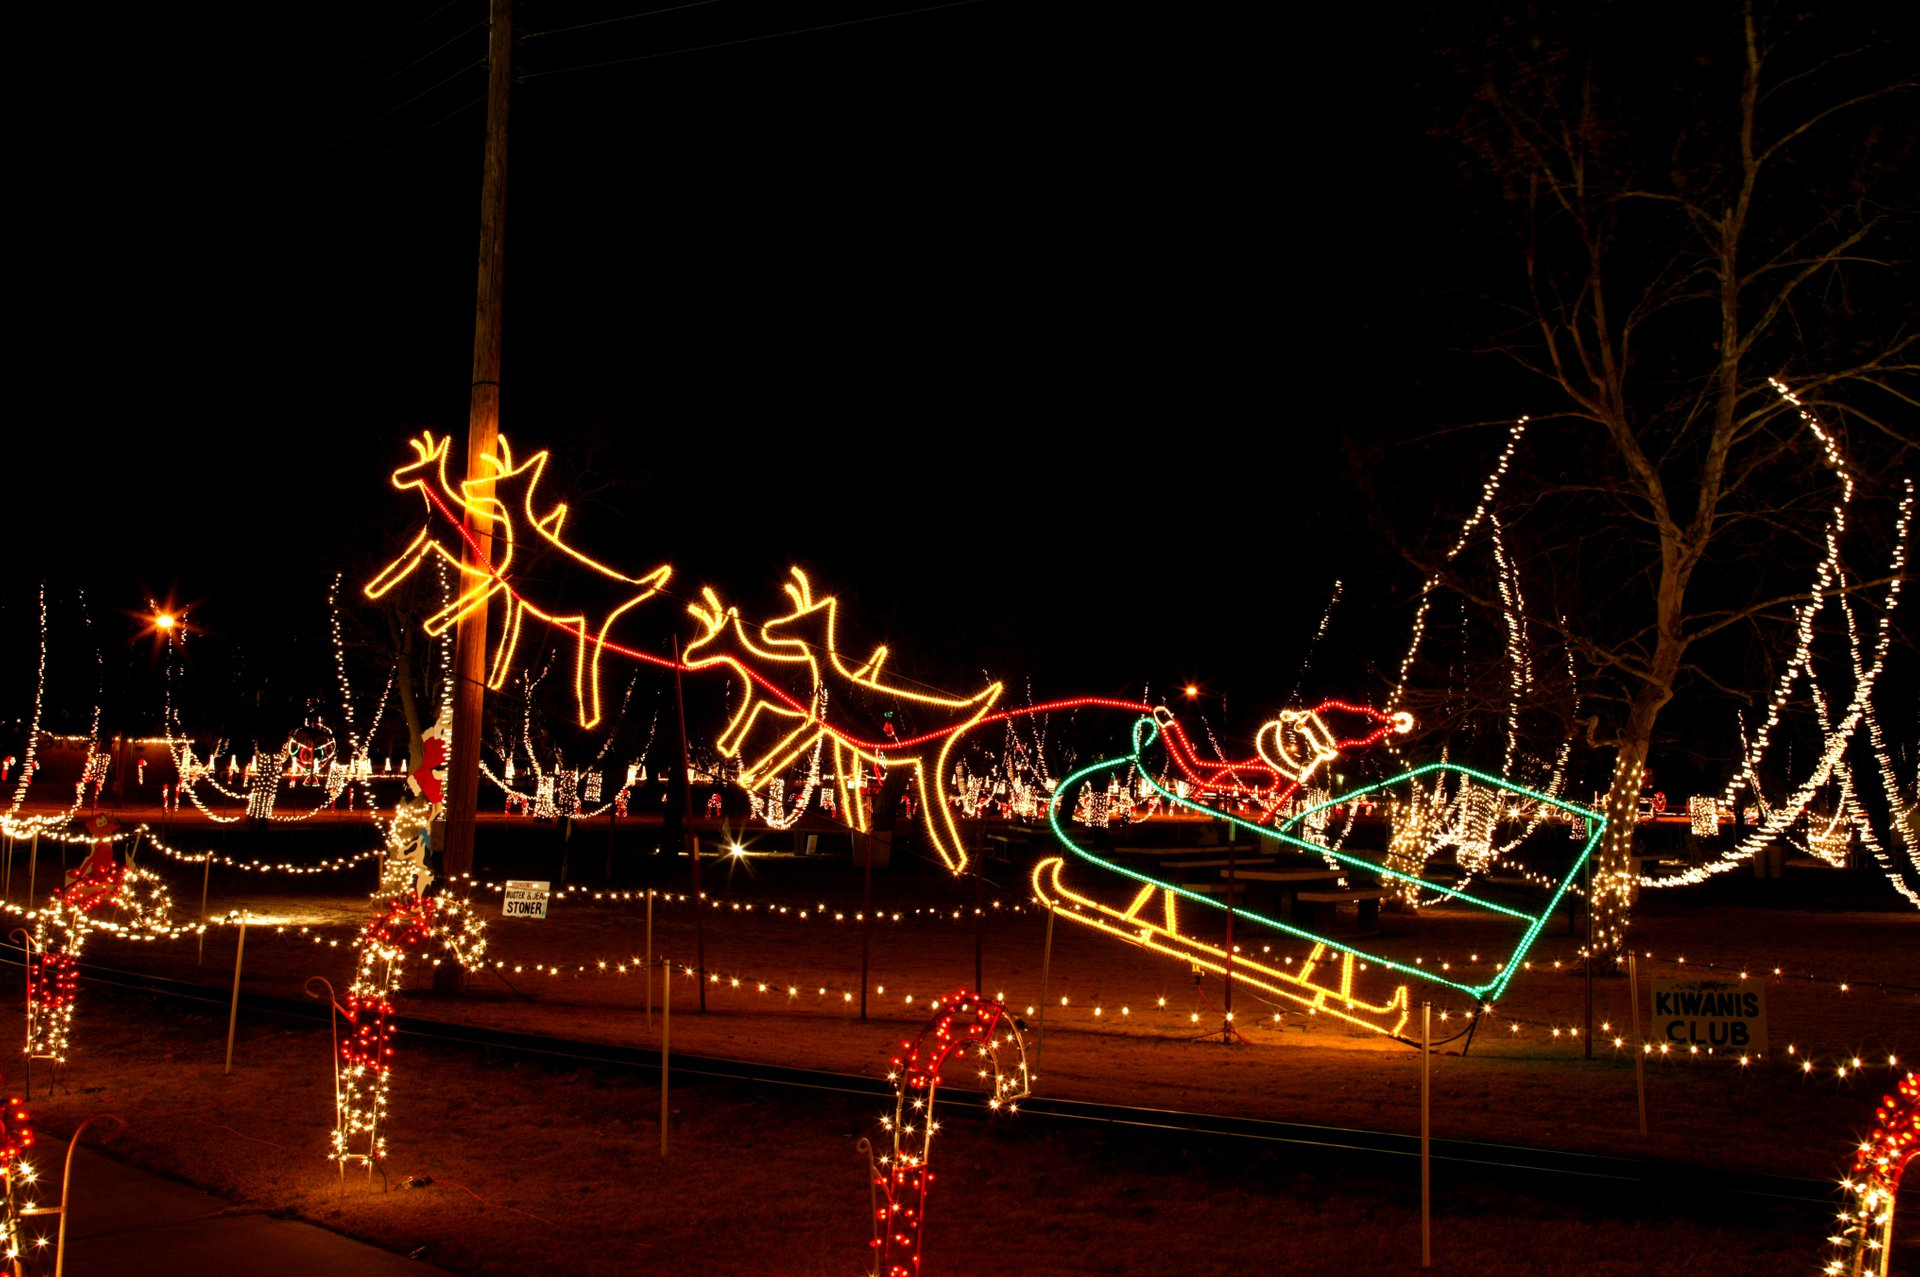 Santa & Sleigh light display at Crystal Christmas in Woodward 2020